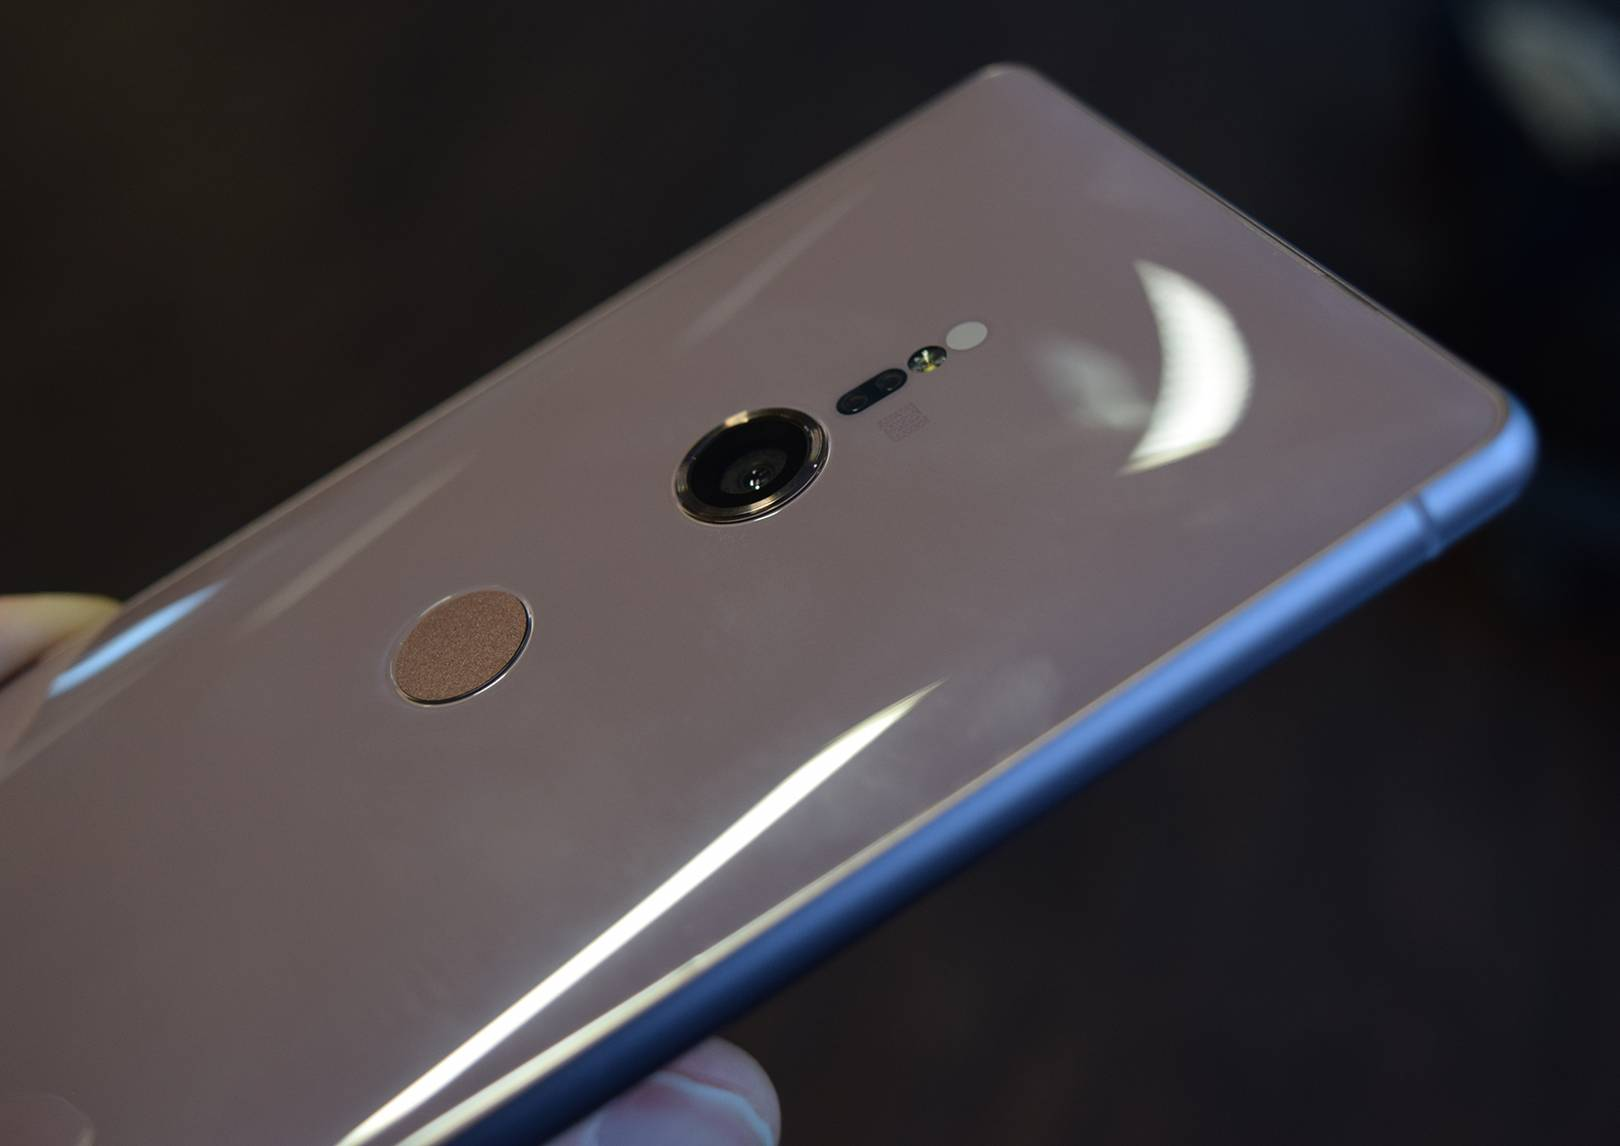 Sony Xperia XZ2 hands-on: a lacklustre flagship with few thrills